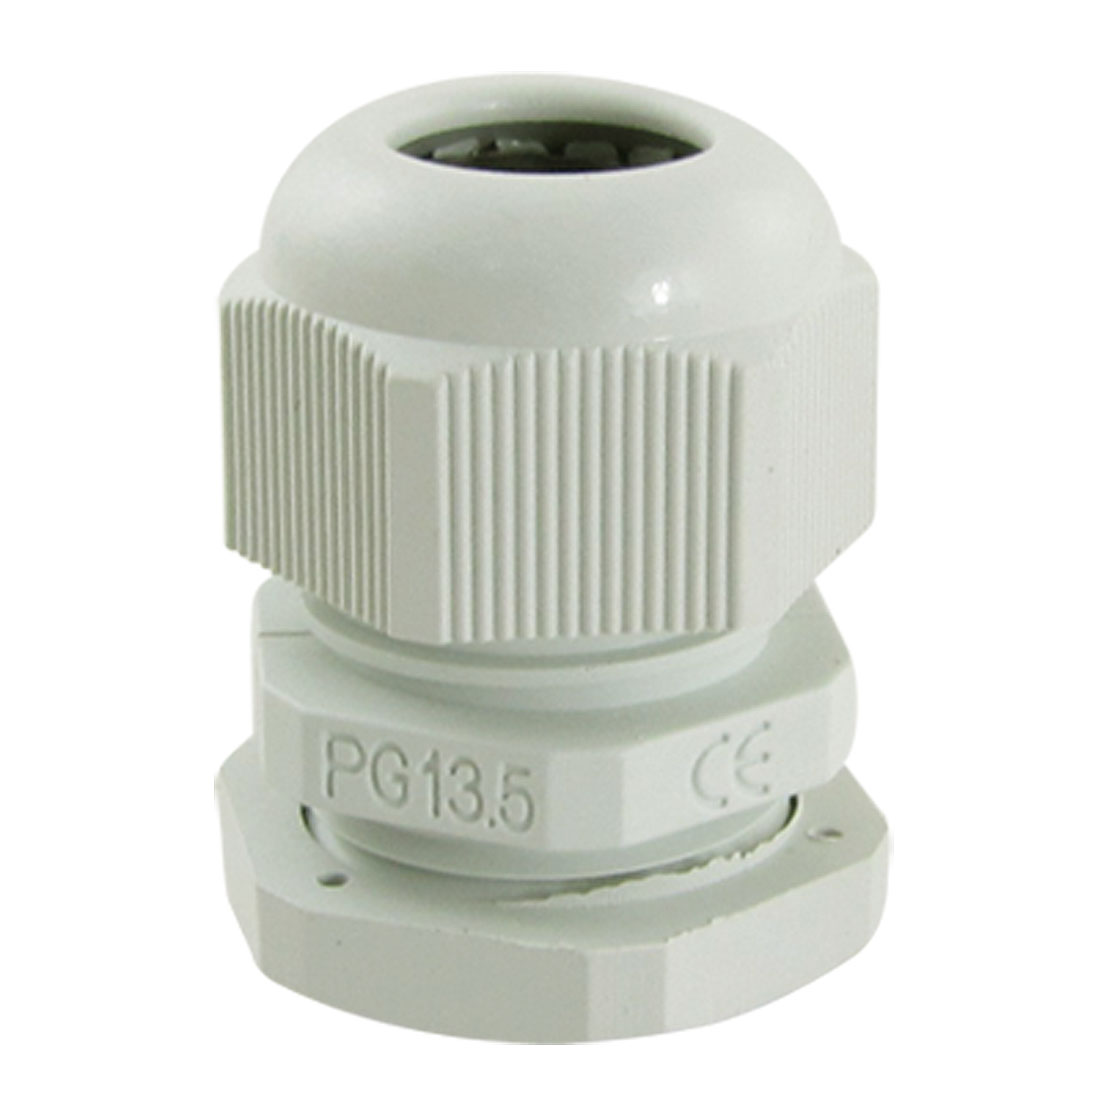 10 Pcs PG13.5 White Plastic Waterproof Connectors Cable Glands